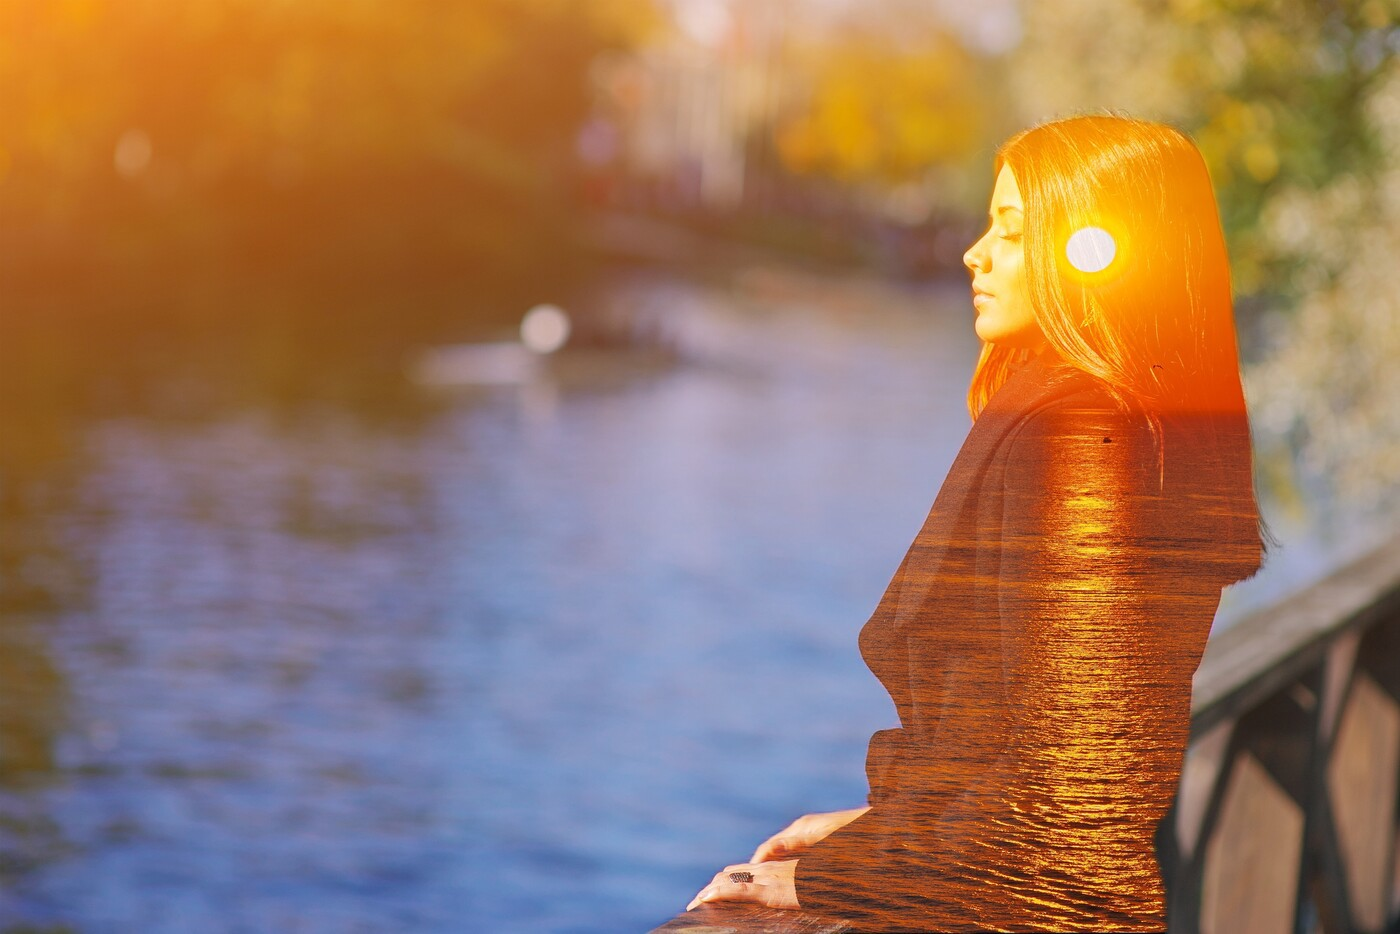 Double multiply exposure portrait of a dreamy woman mindfully meditating outdoors with eyes closed, combined photograph of nature, sunrise or sunset.